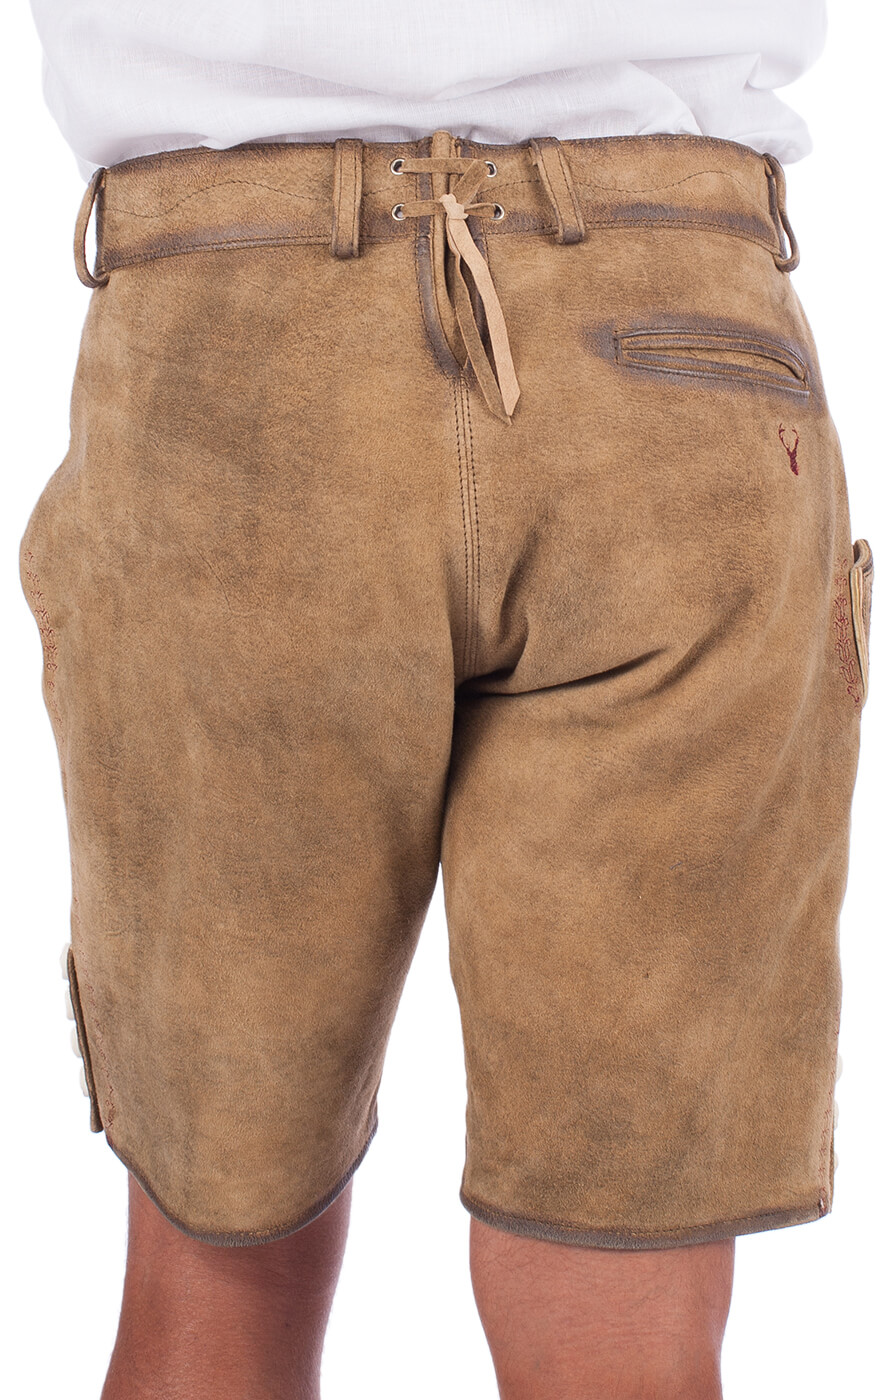 weitere Bilder von German leather trousers Gremlin brown